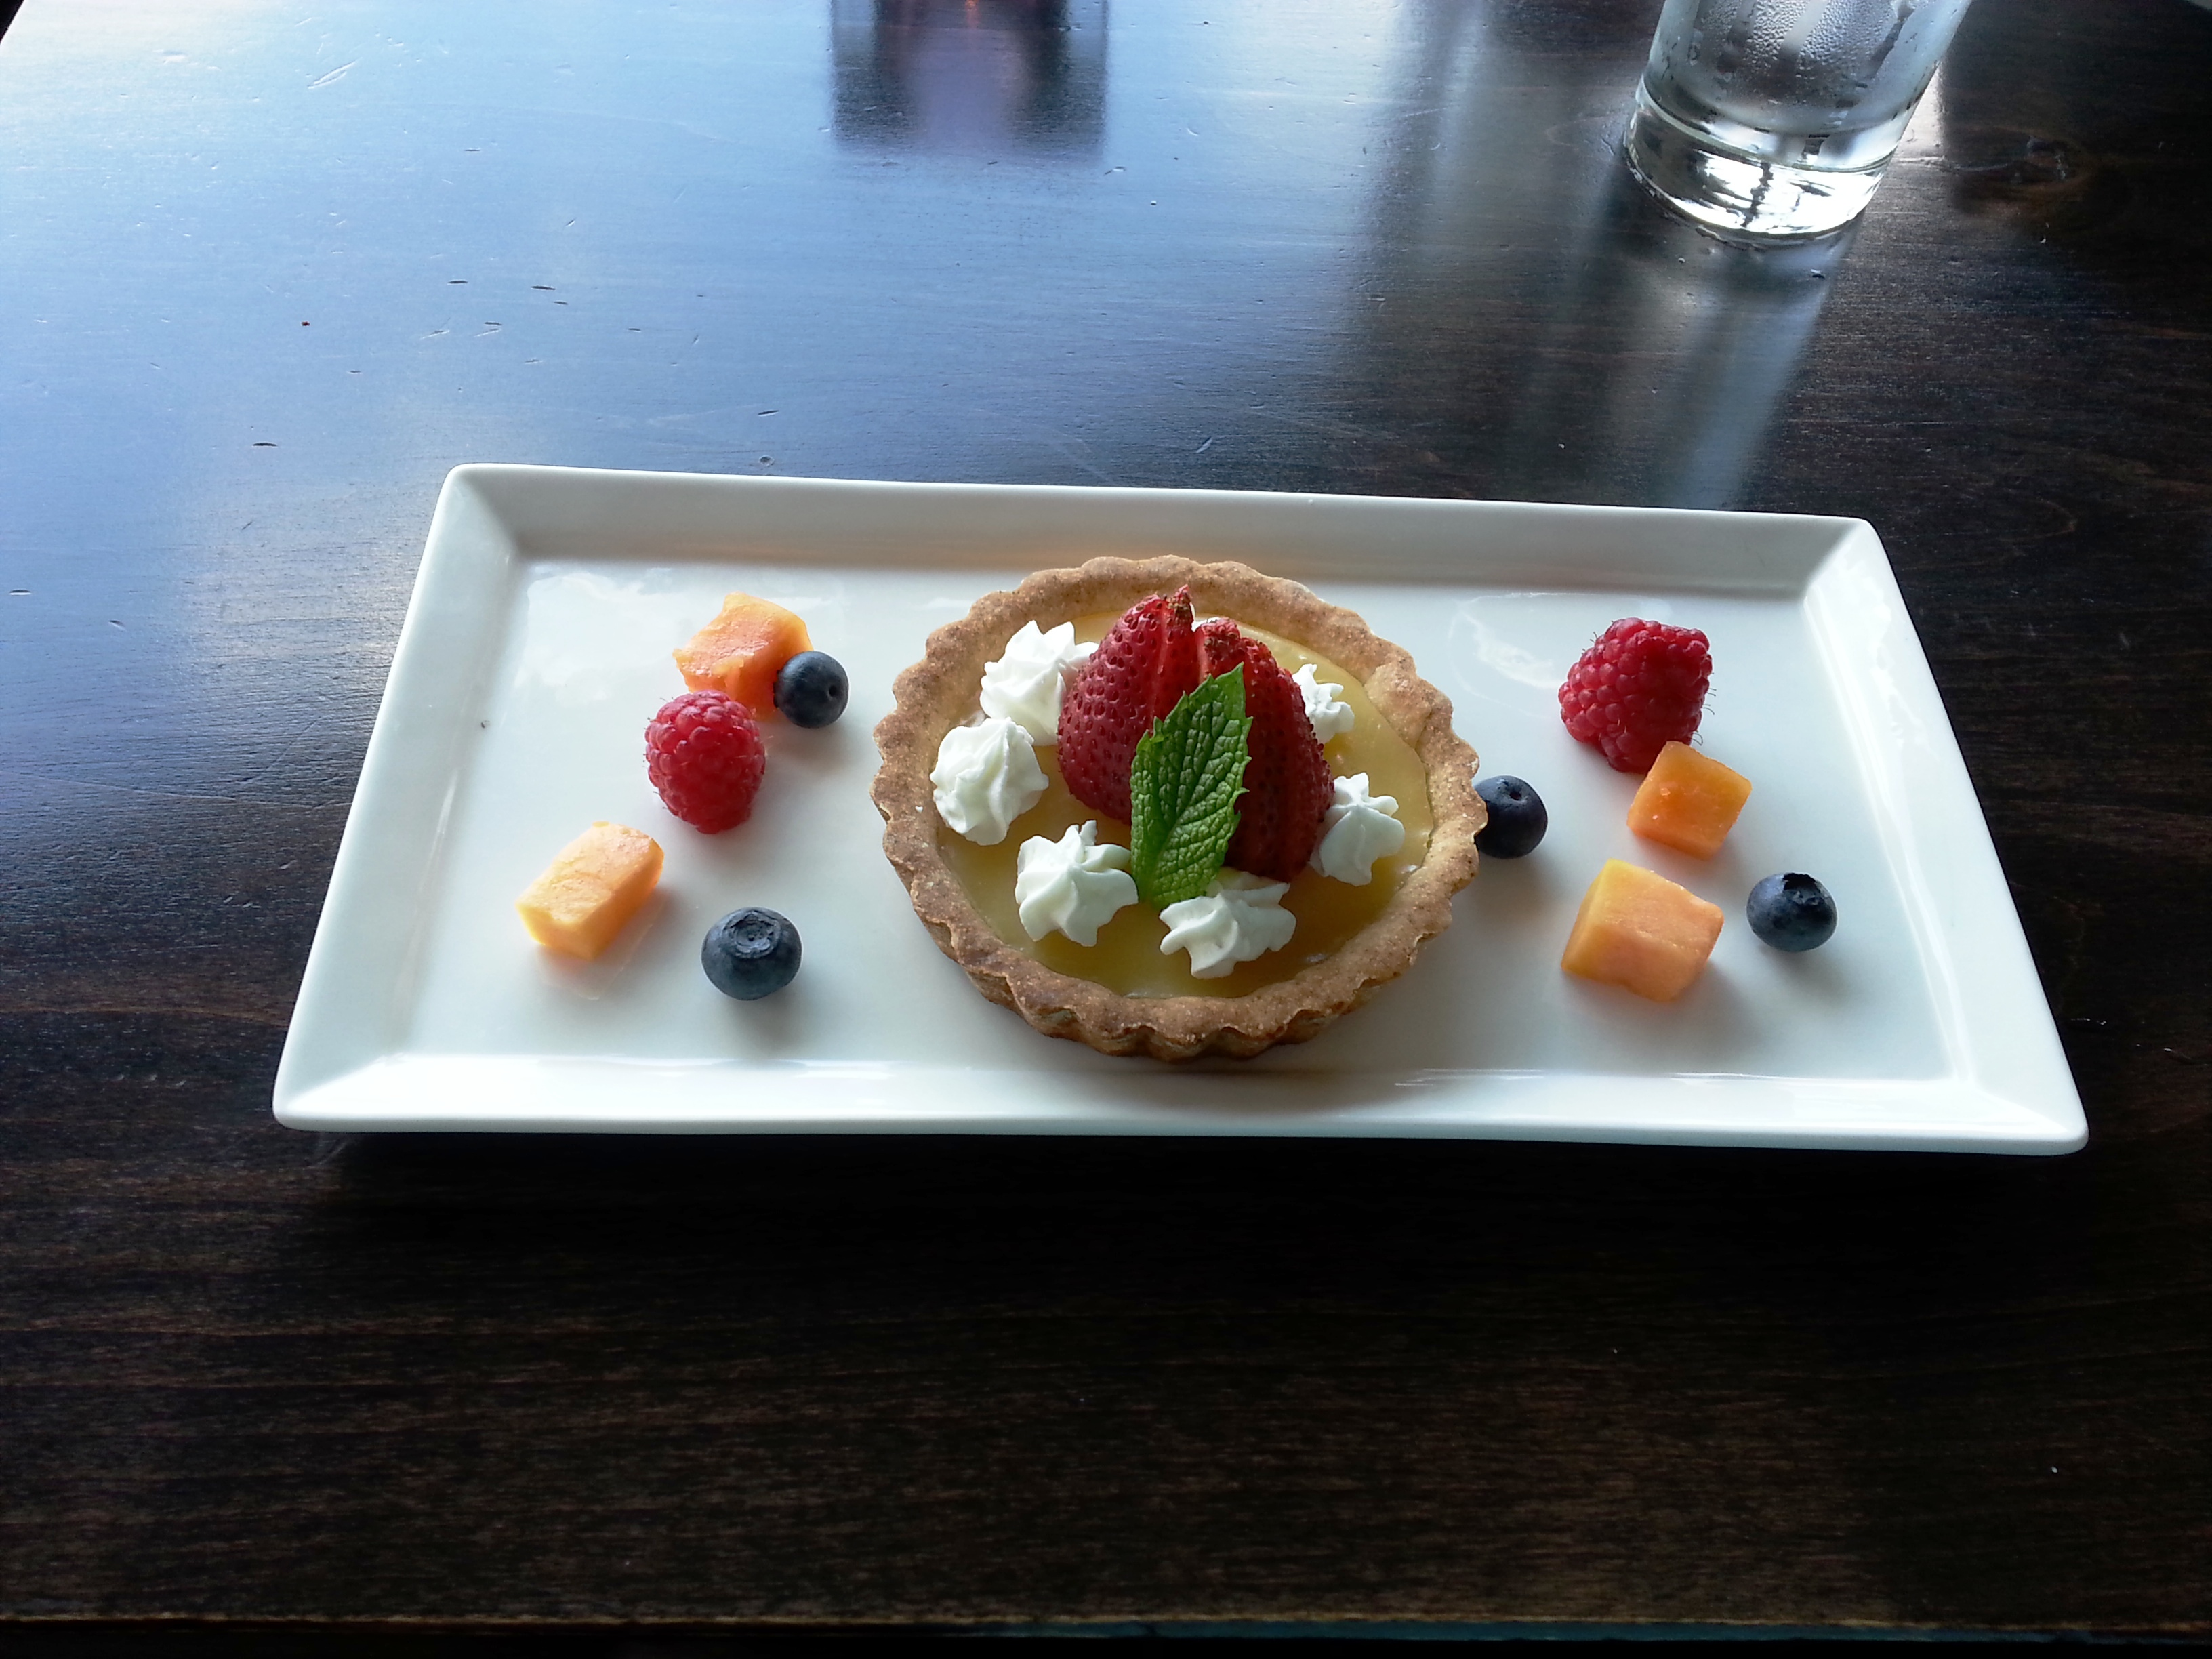 Yuzzu tart with fruit